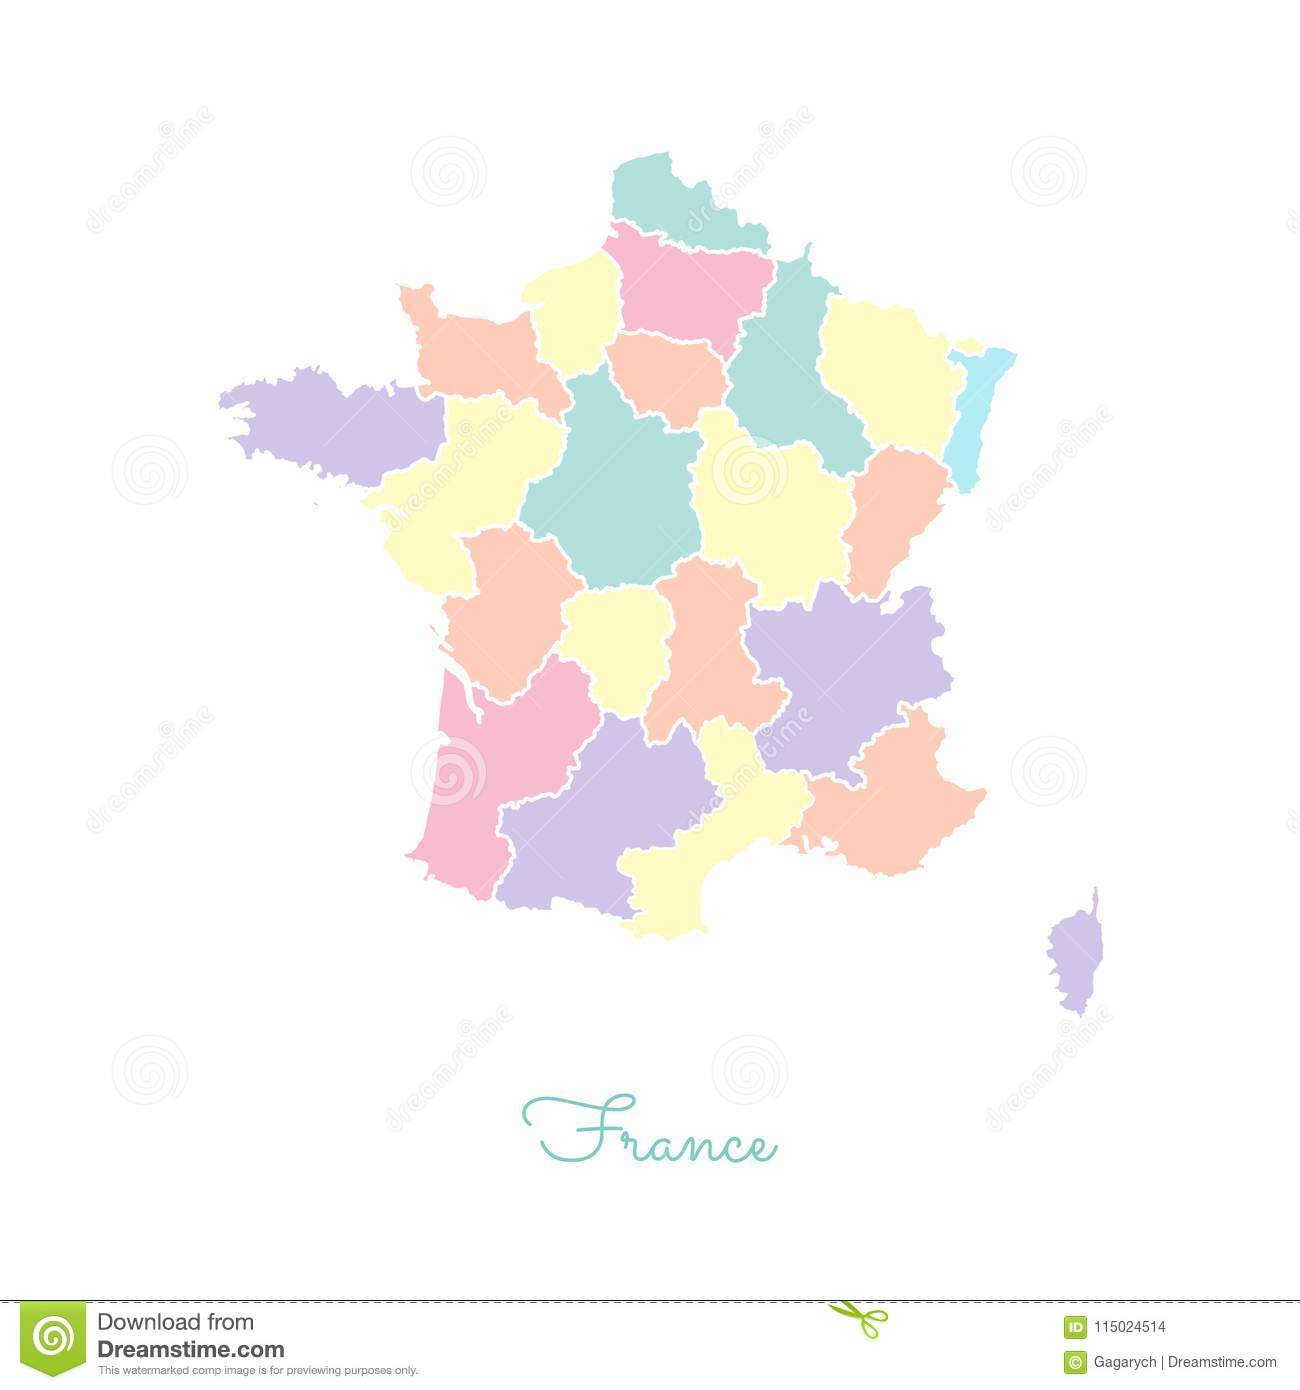 Outline Of Map Of France.France Region Map Colorful With White Outline Stock Vector